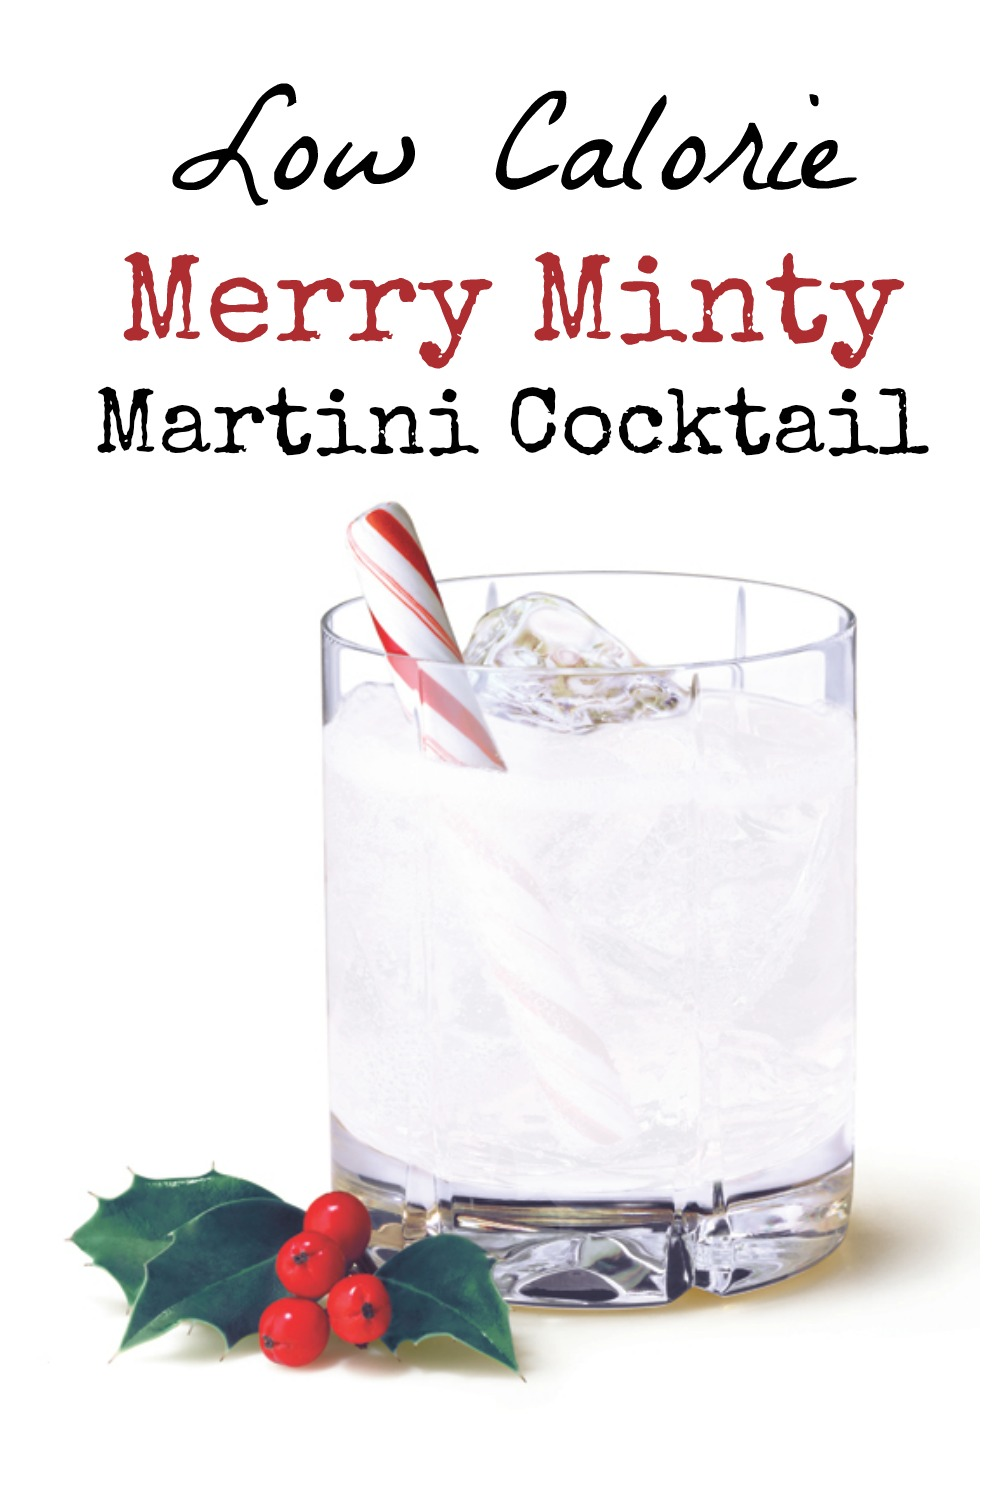 This low calorie Merry Minty Martini cocktail taste like a holiday dessert